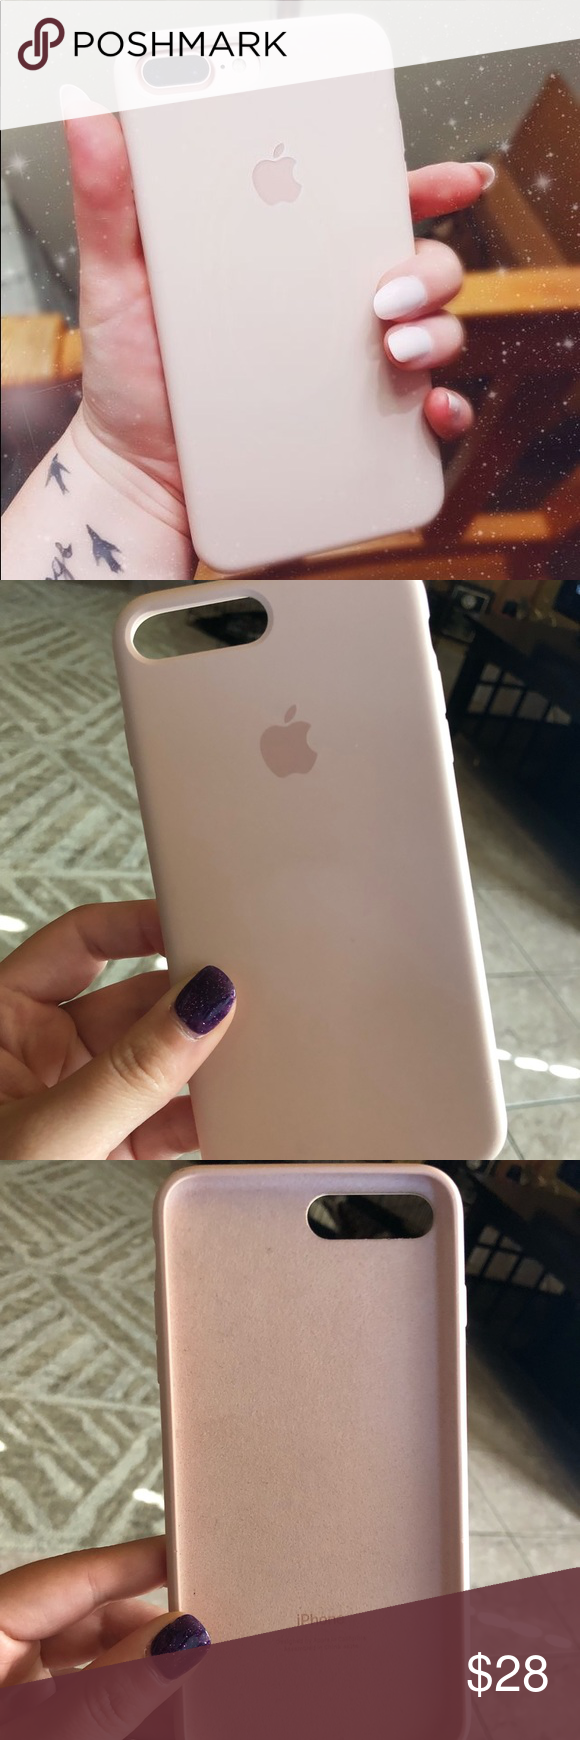 apple iphone 8 case pink sand